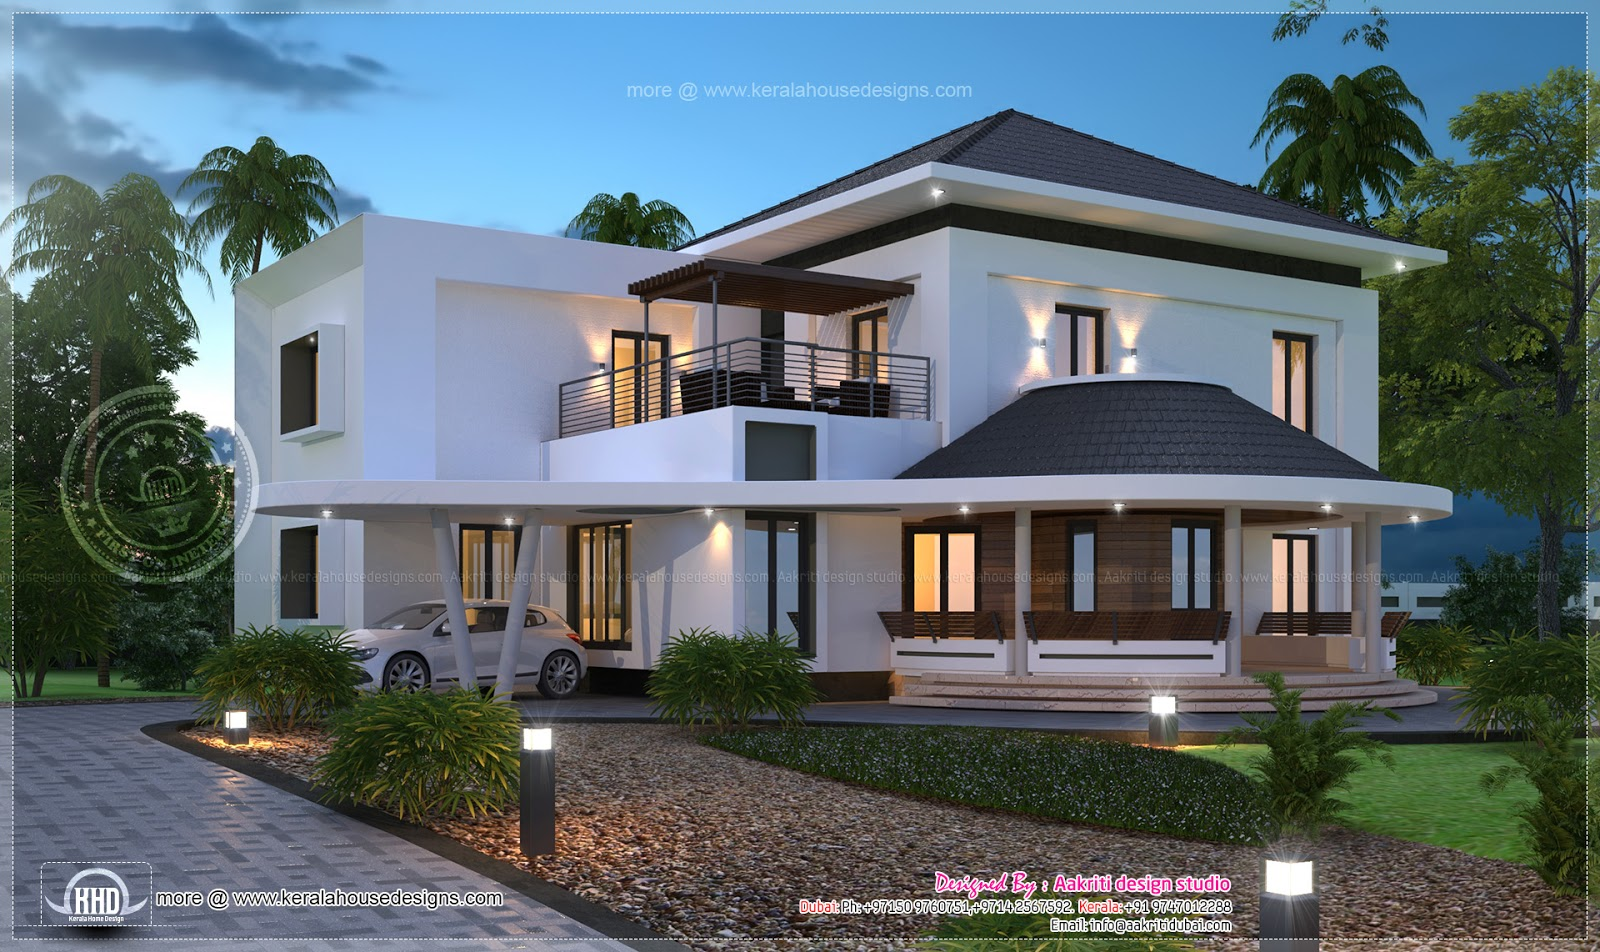 Beautiful 3200 sq ft modern villa exterior kerala home design and floor plans Stunning modern home exterior designs